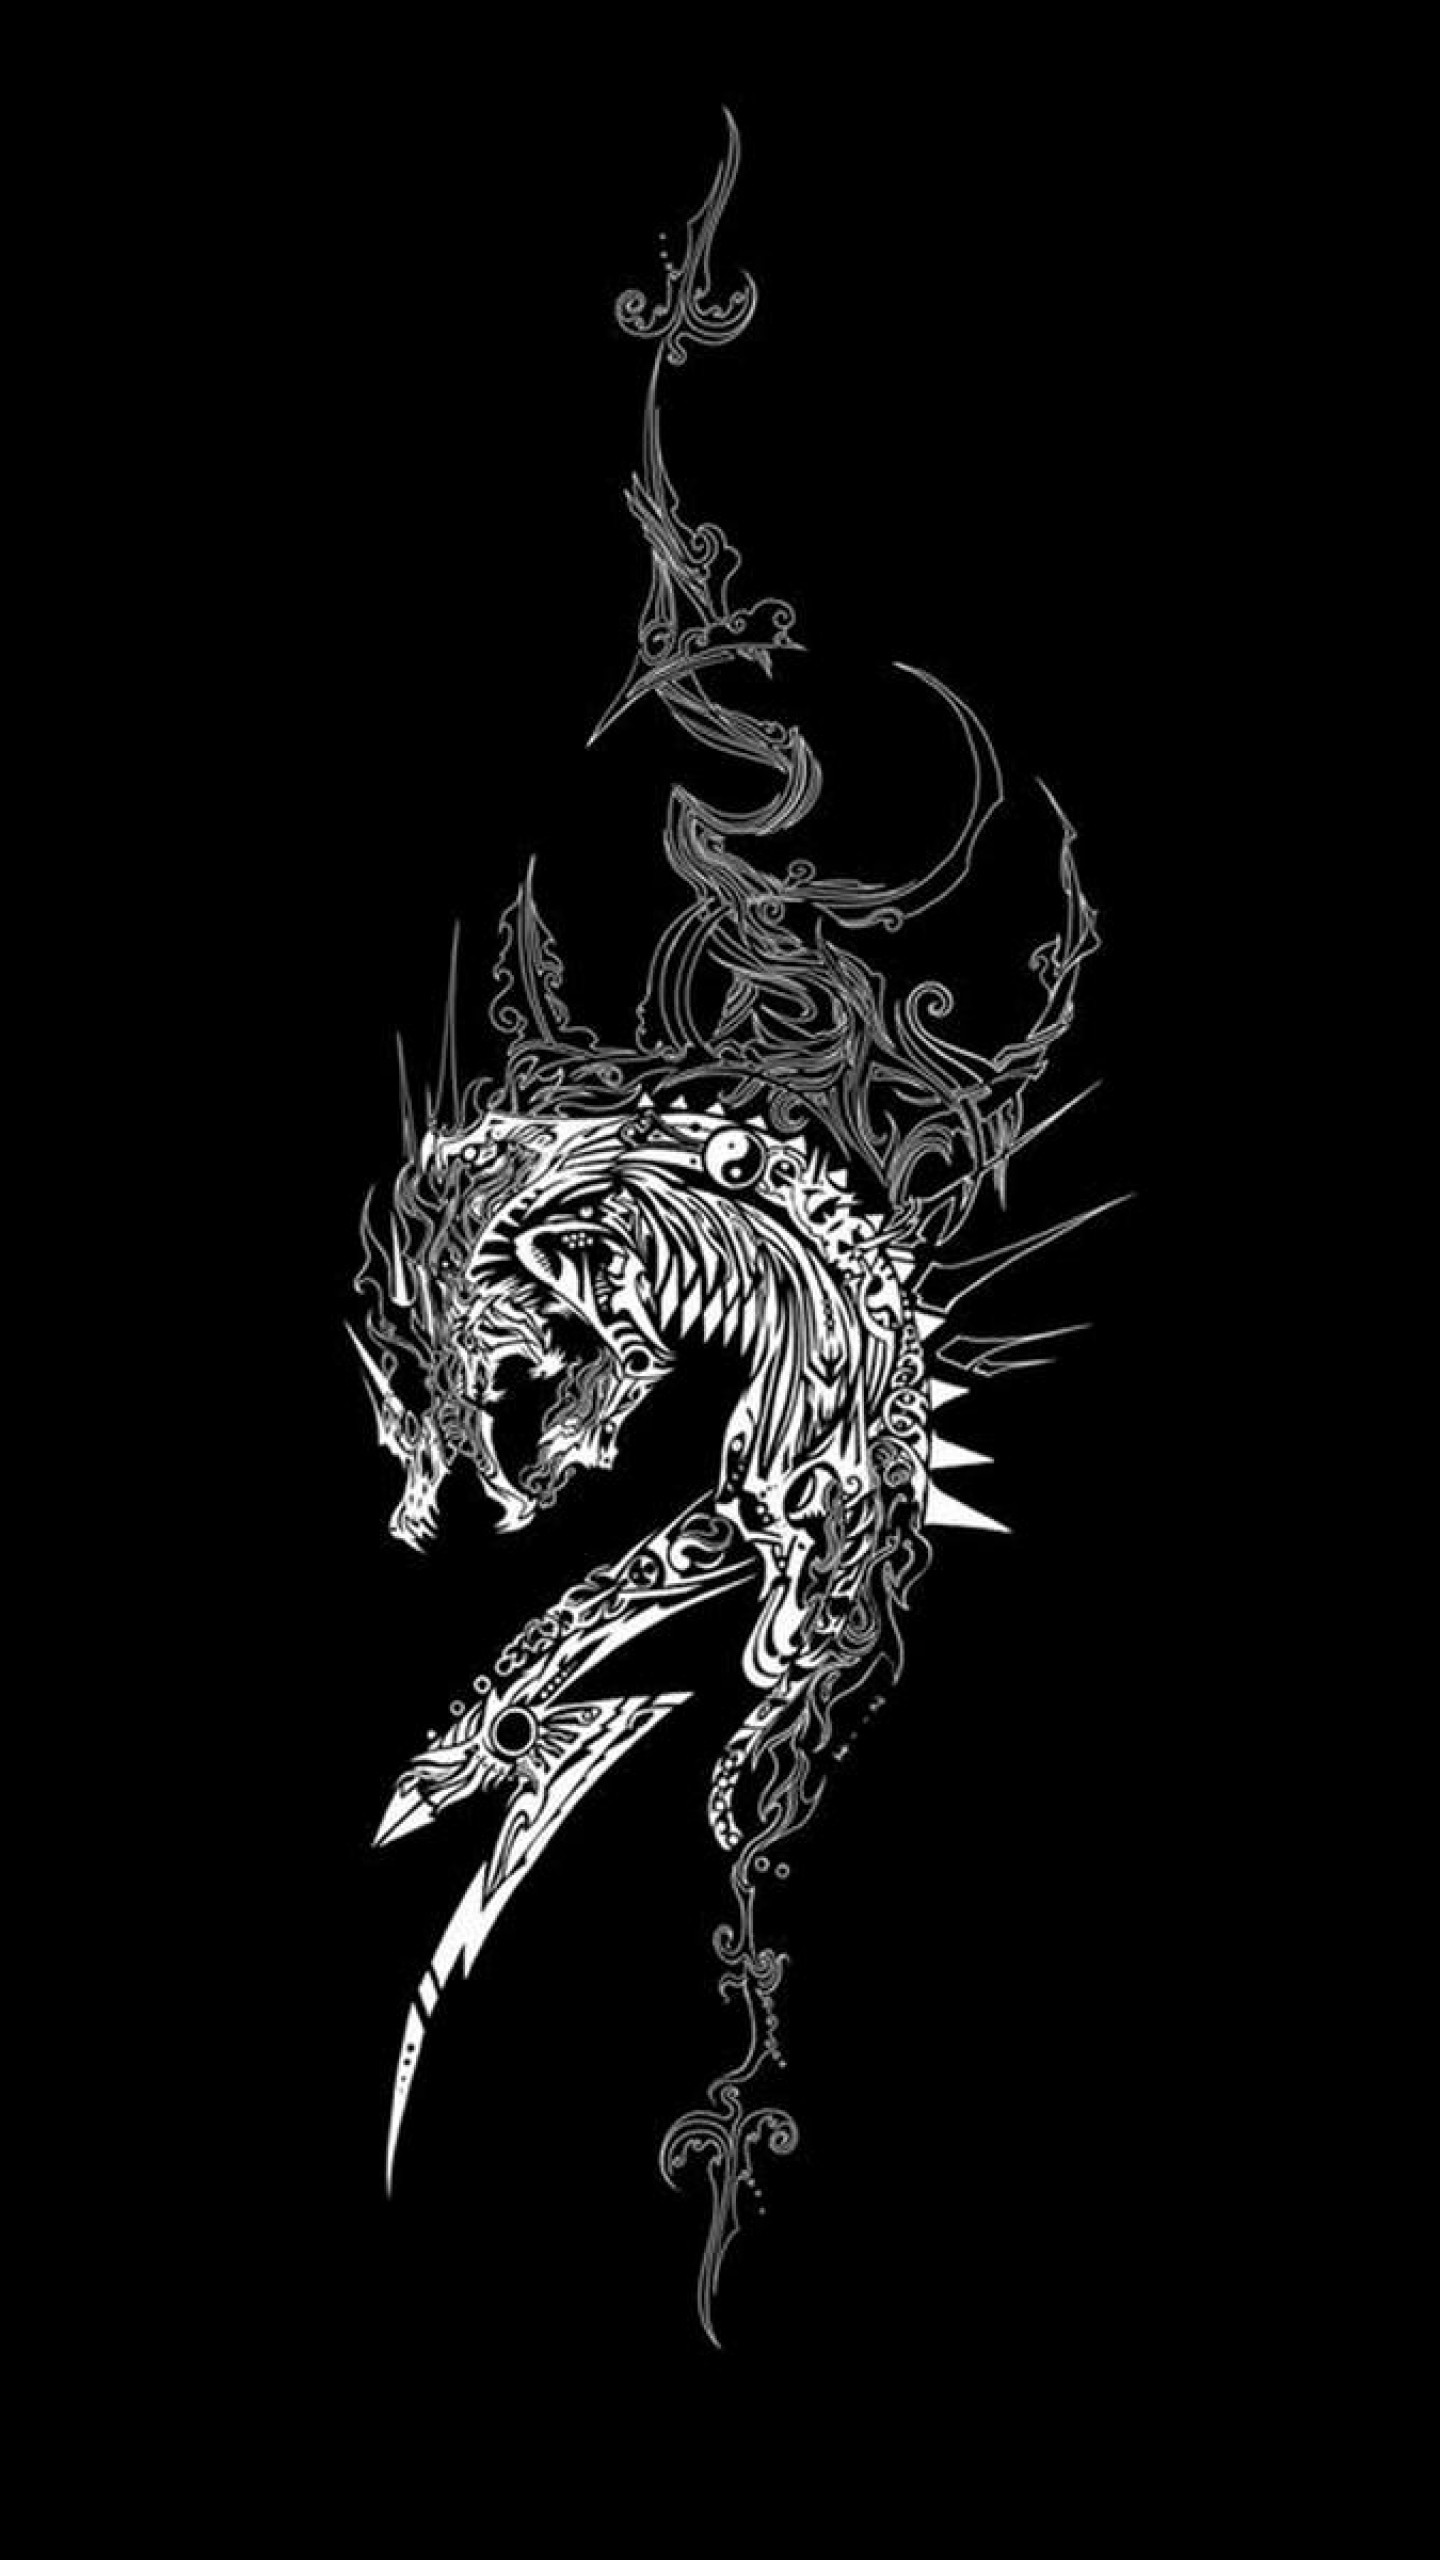 Galaxy S8 Quote Wallpaper White Dragon Wallpaper 76 Images